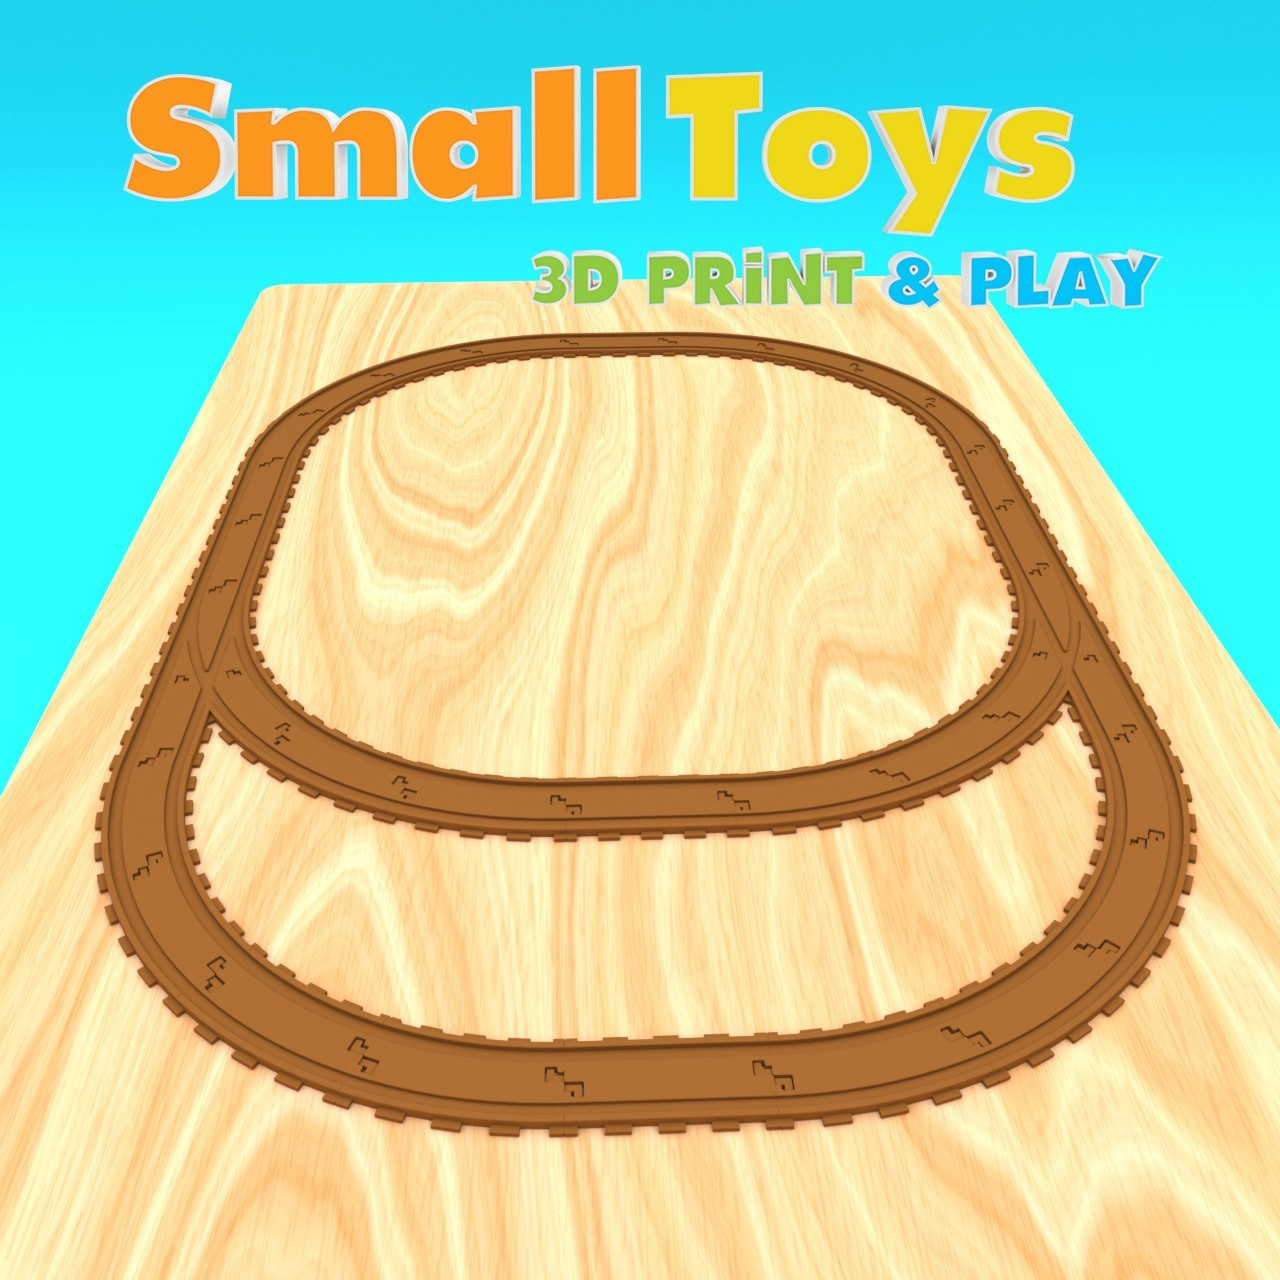 smalltoys-trainswitches01.jpg Download STL file SmallToys - Railway tracks - Switches • 3D print design, Wabby